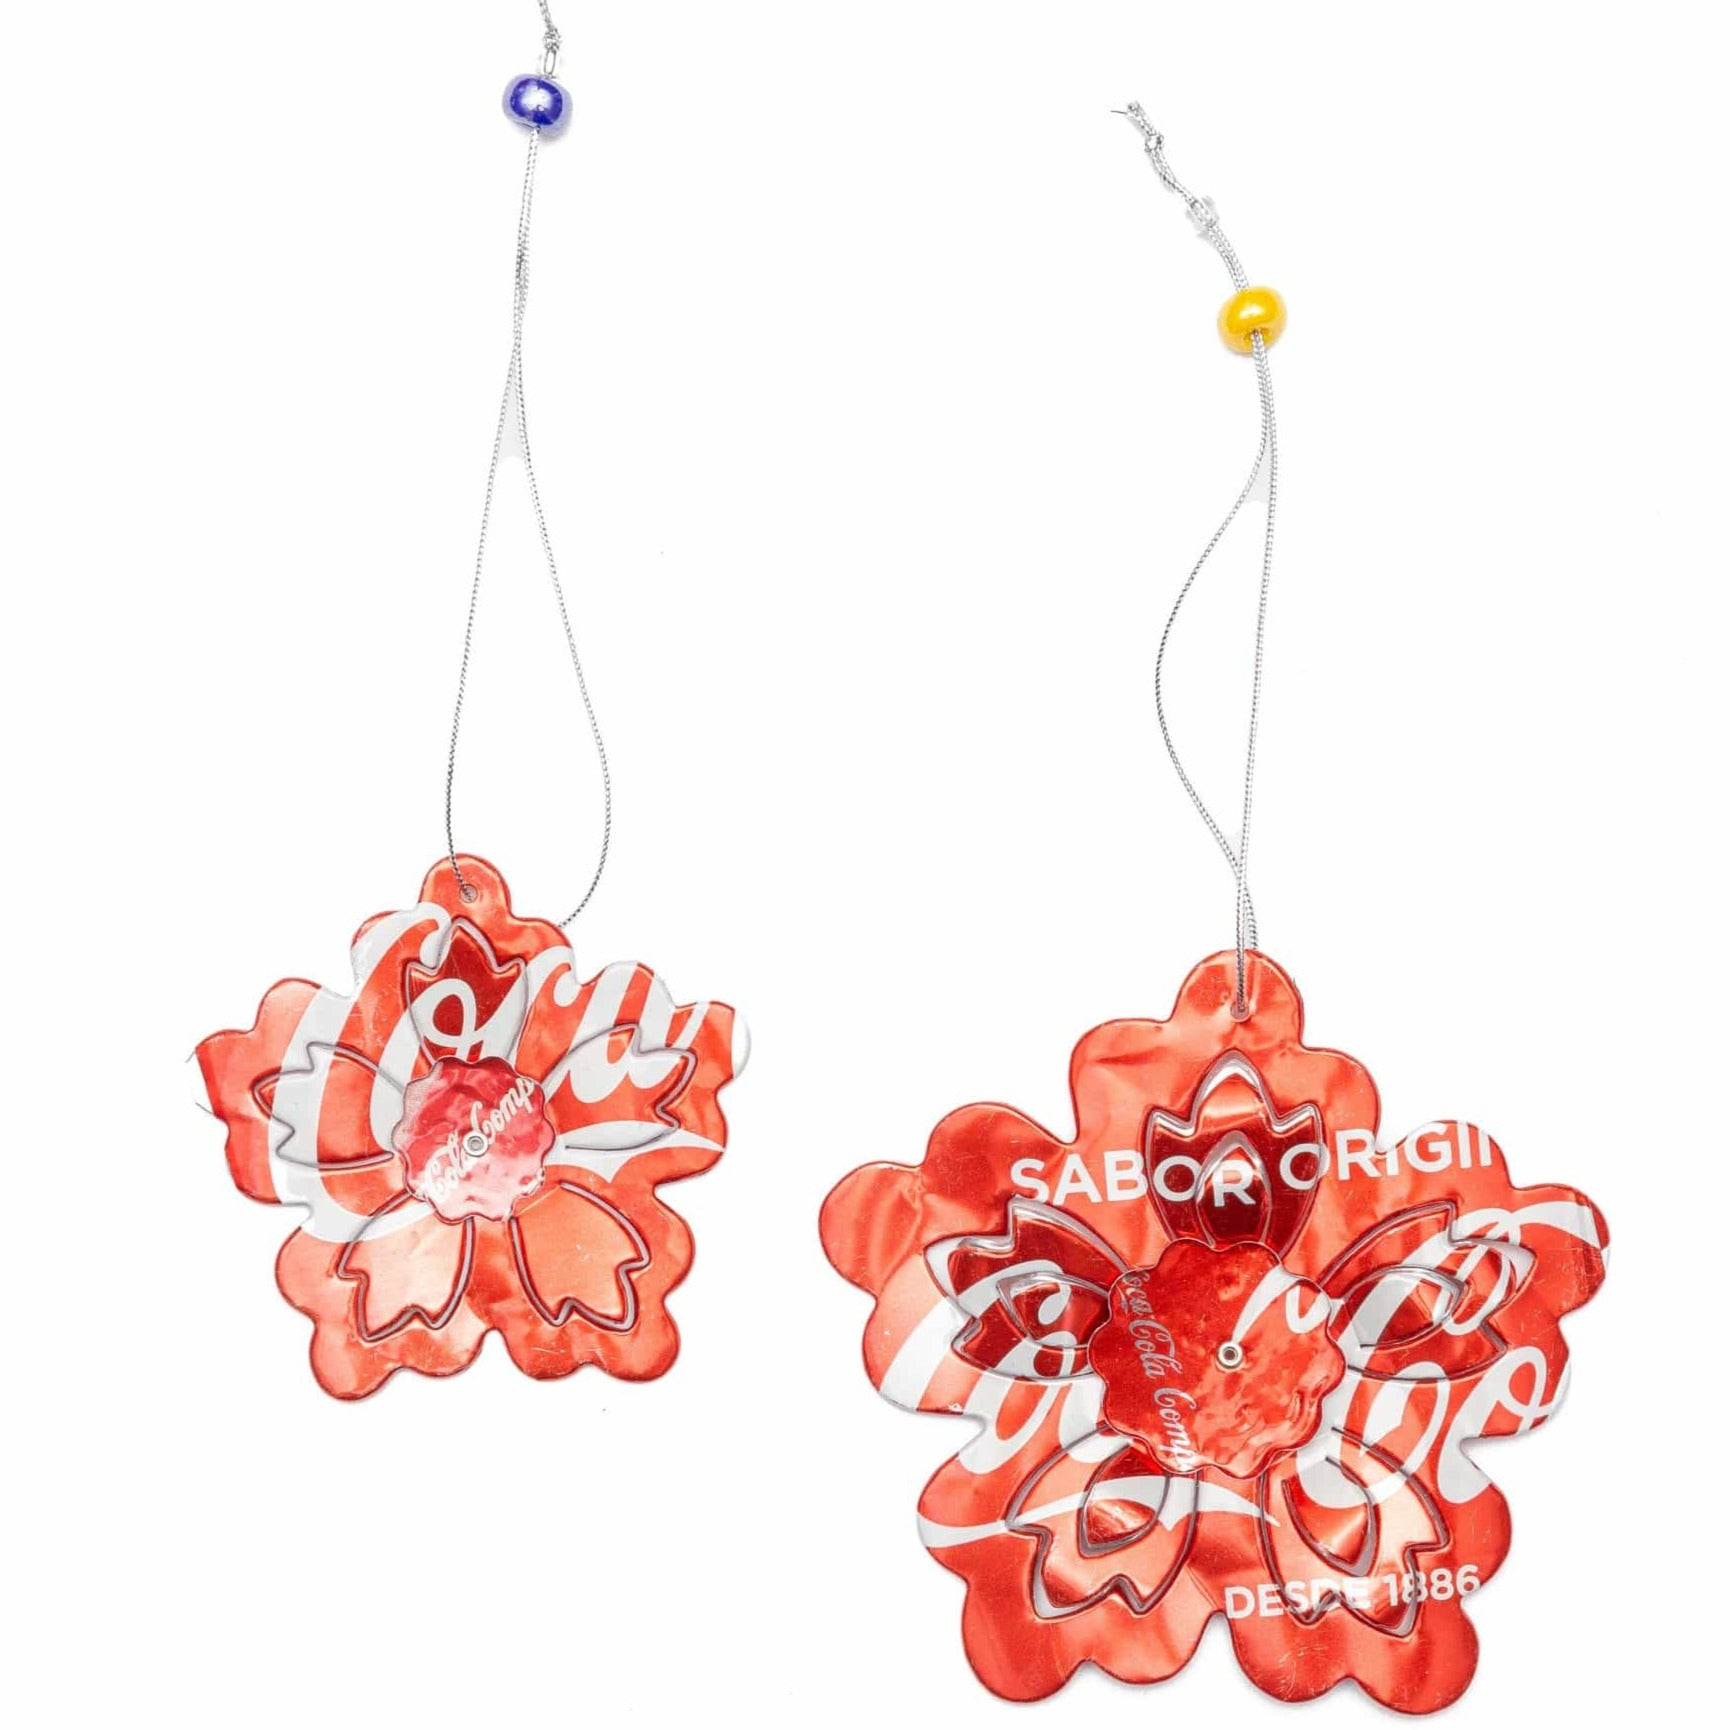 Recycled 3D Flower Set Ornament